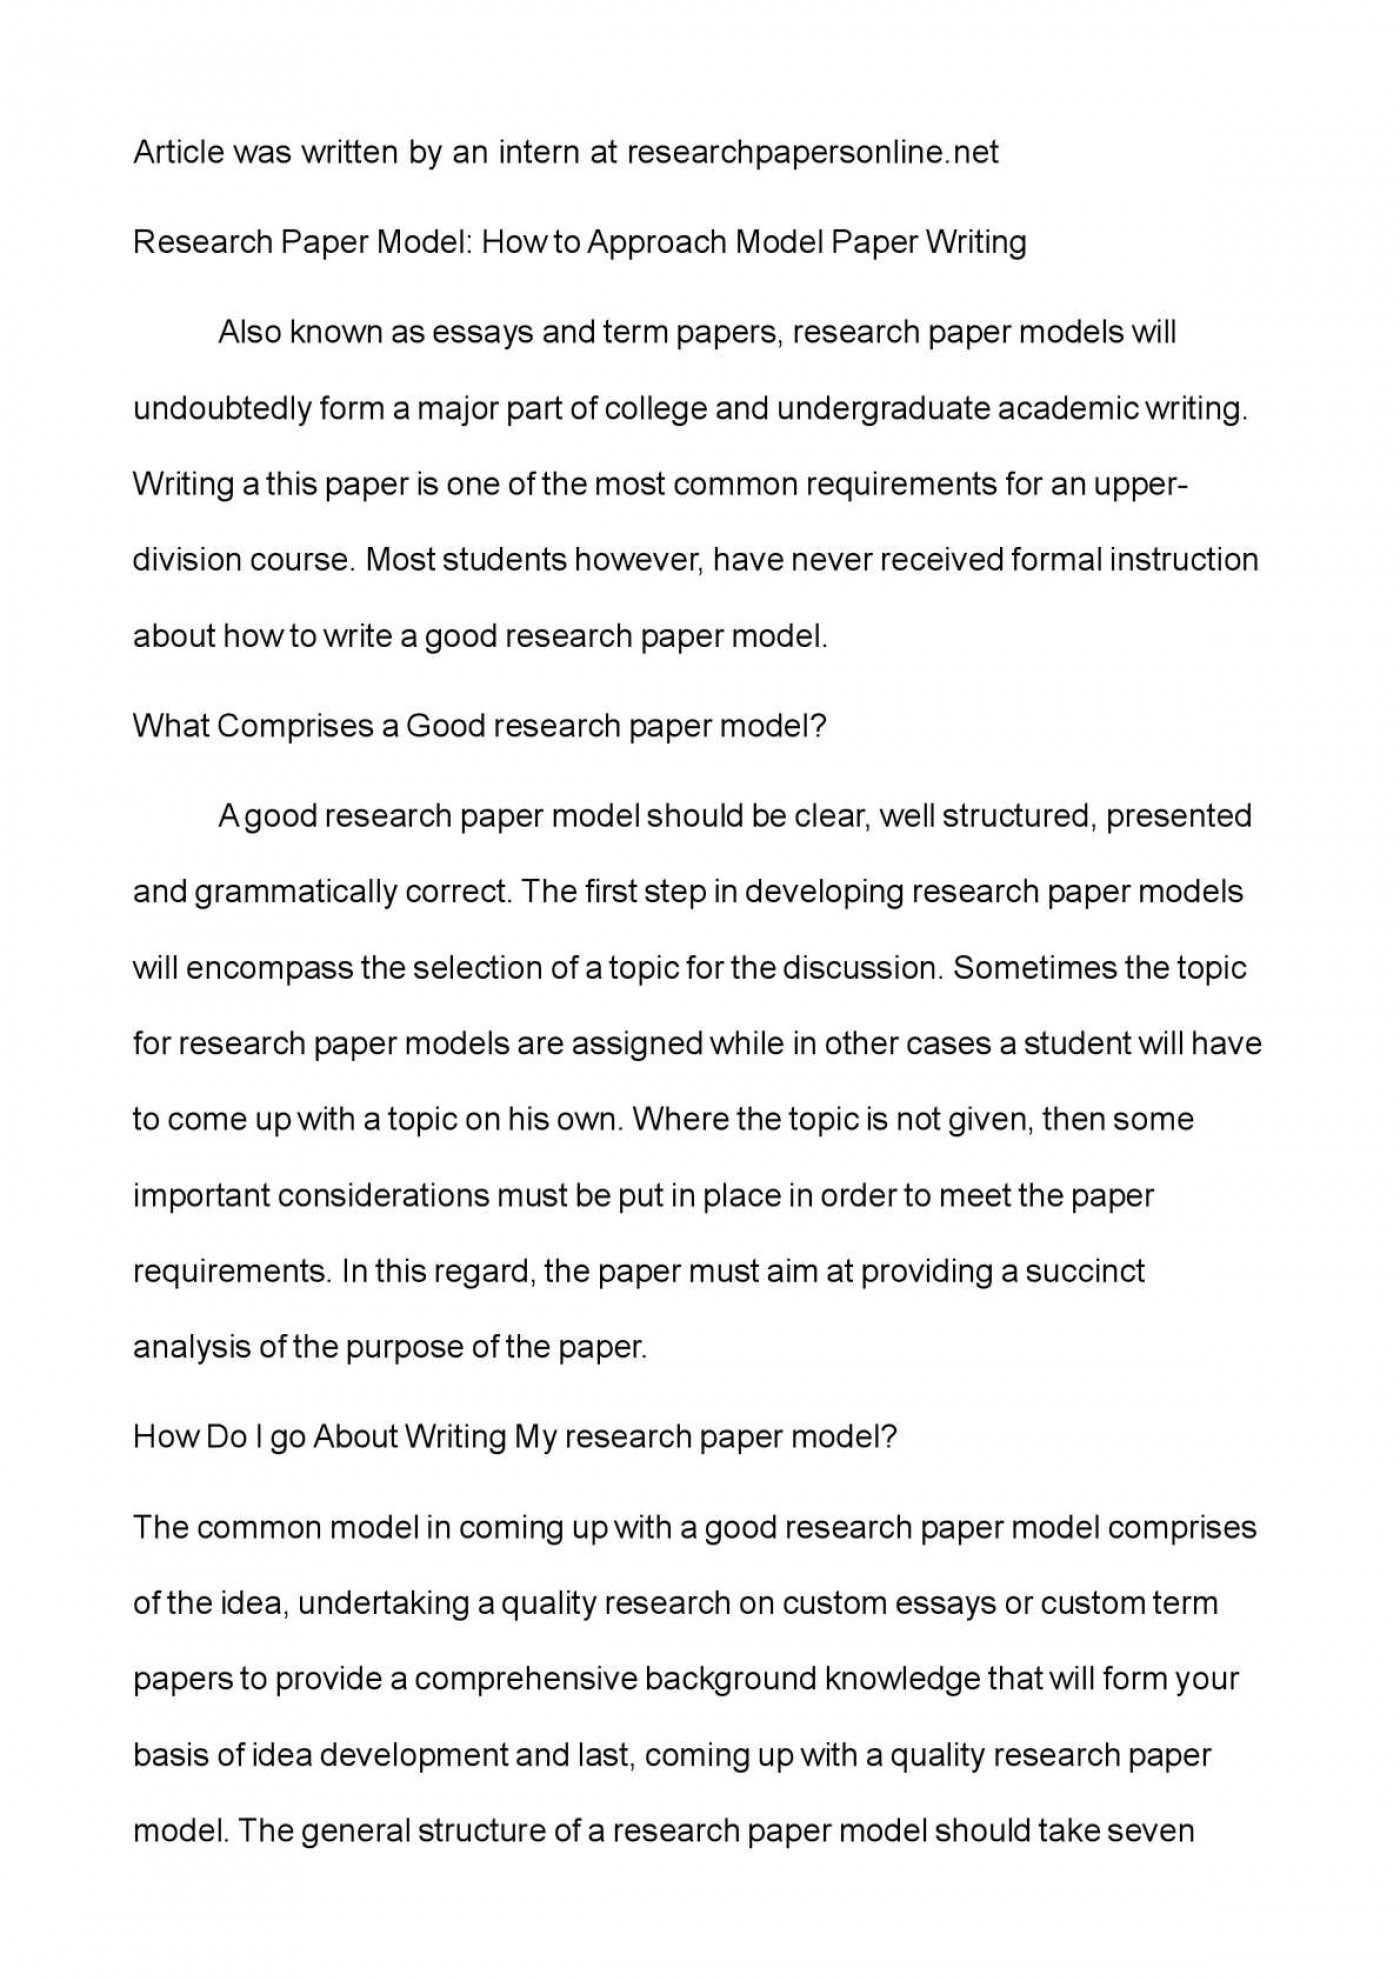 012 Research Paper P1 Correct Order Of Wonderful A Sequence Steps For Writing 1400